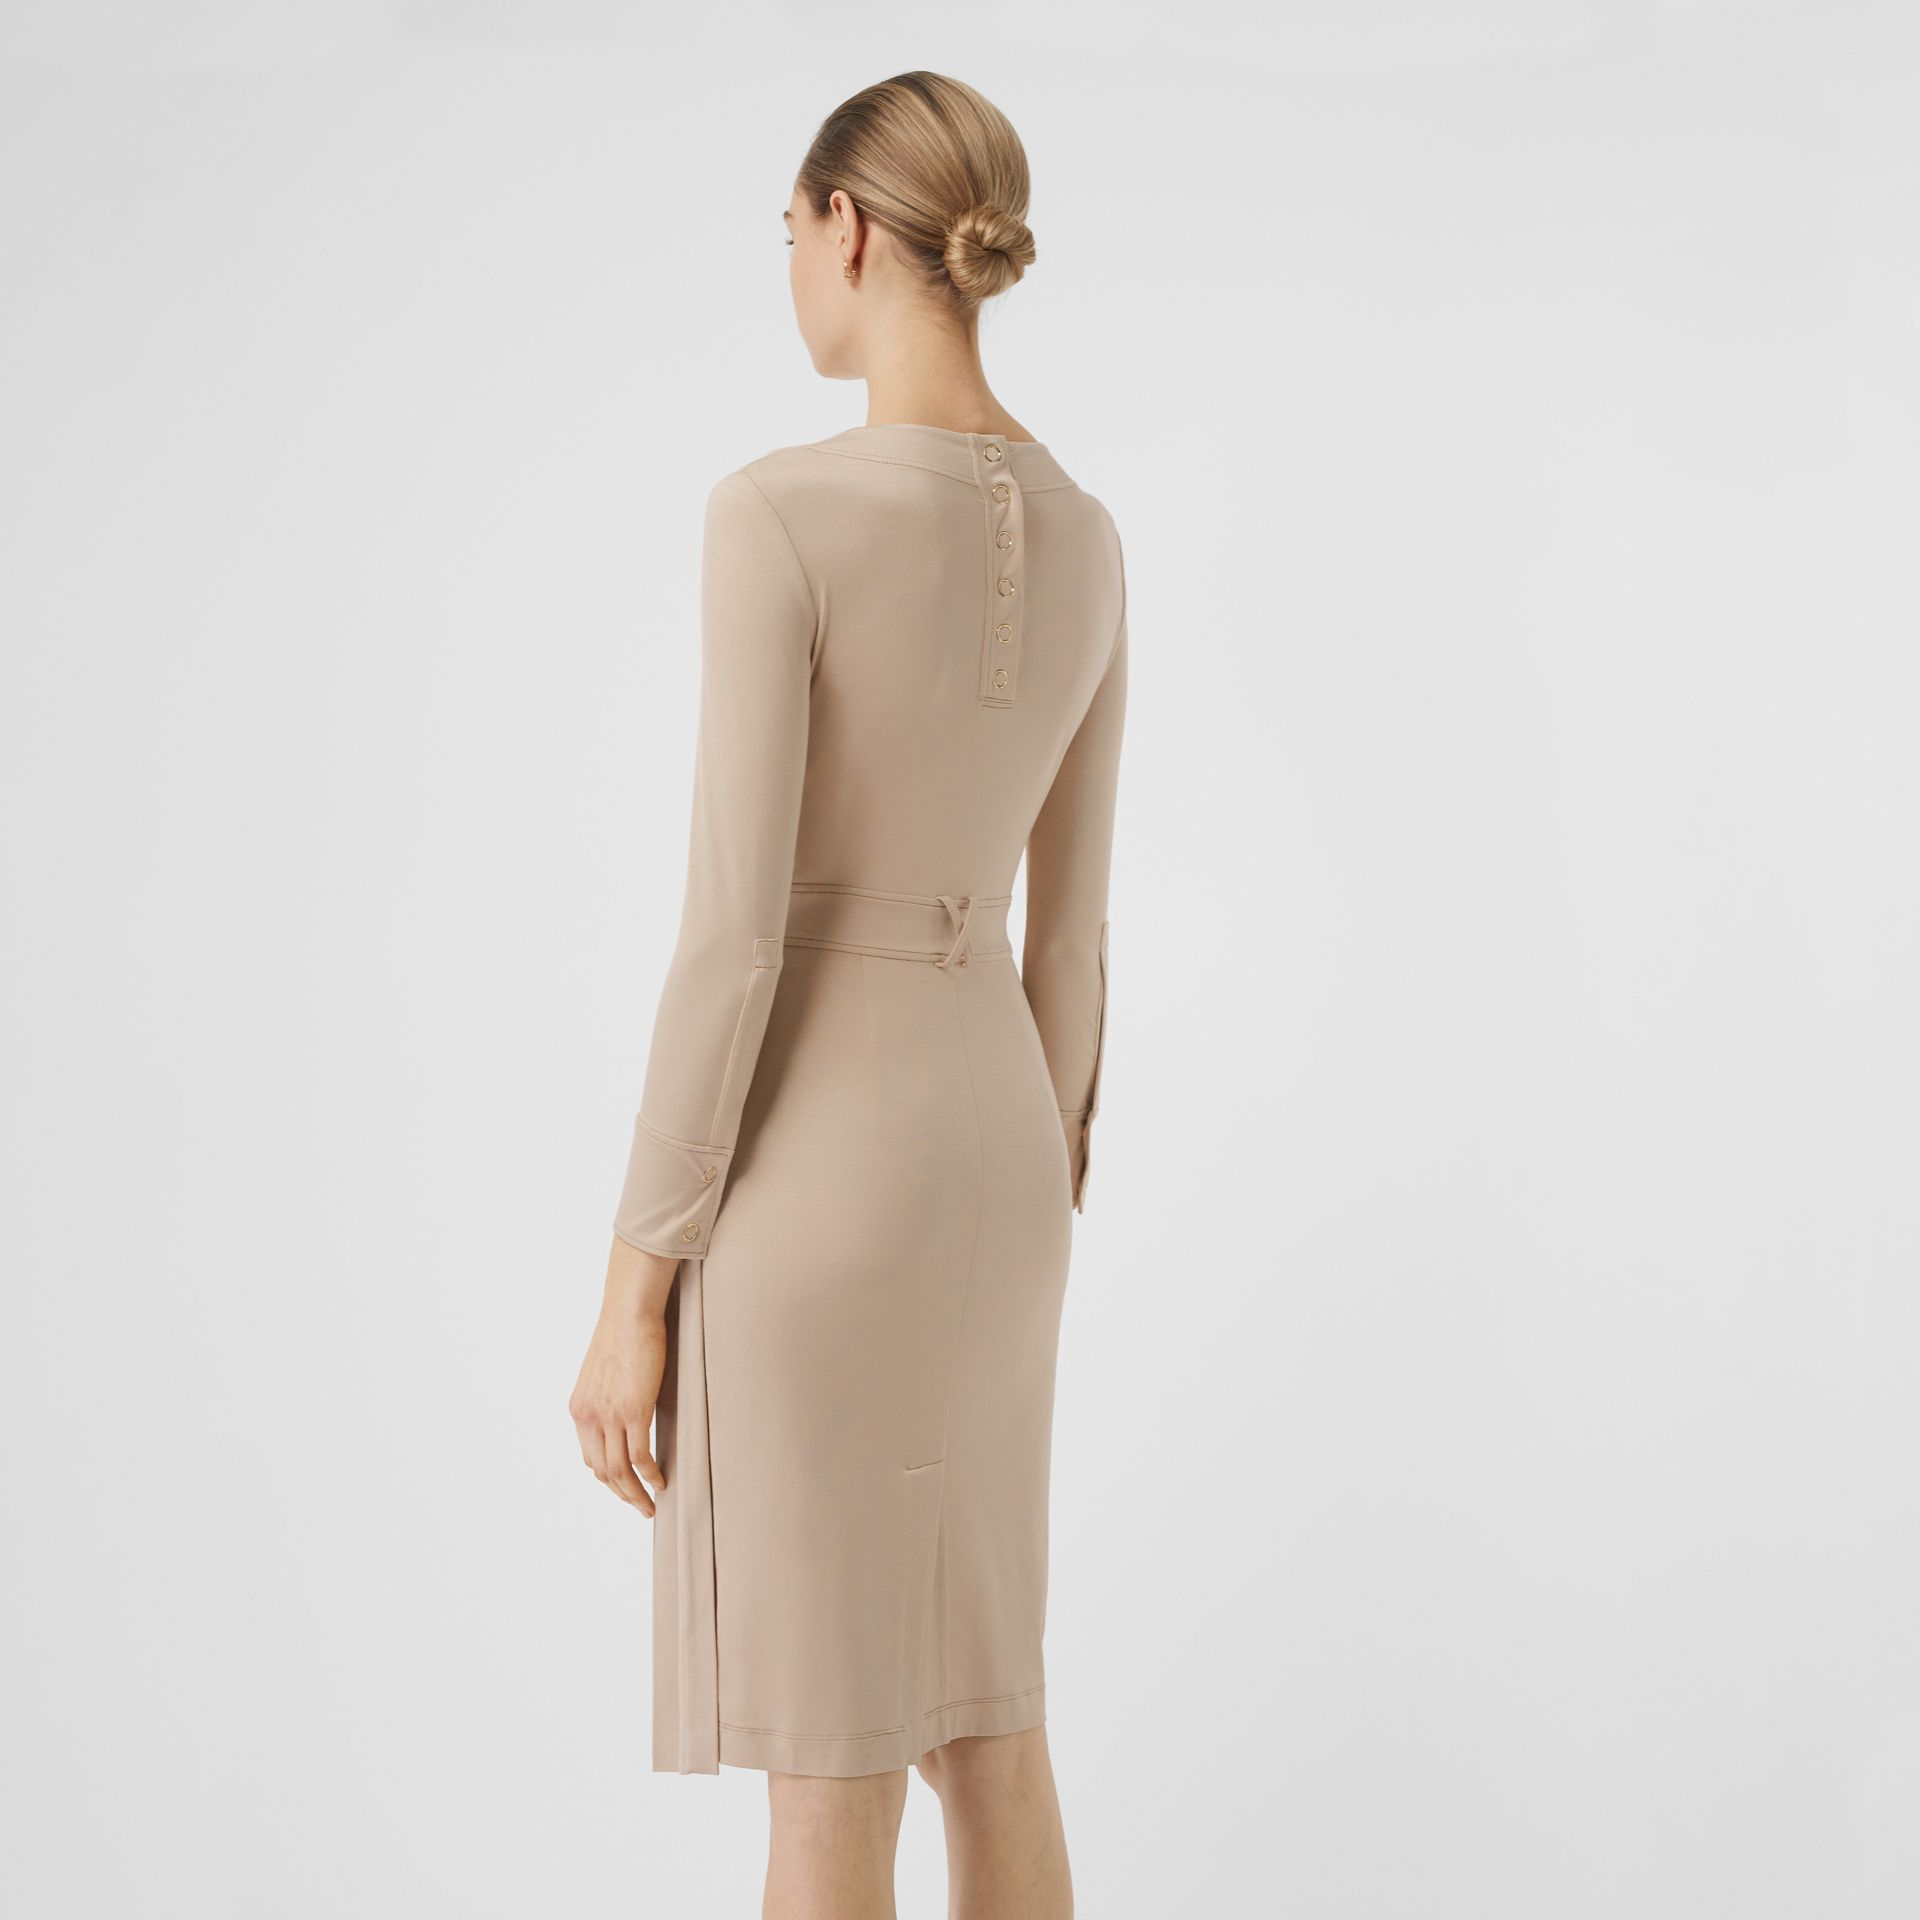 Long-sleeve Pleated Dress in Teddy Beige - Women | Burberry United States - gallery image 2